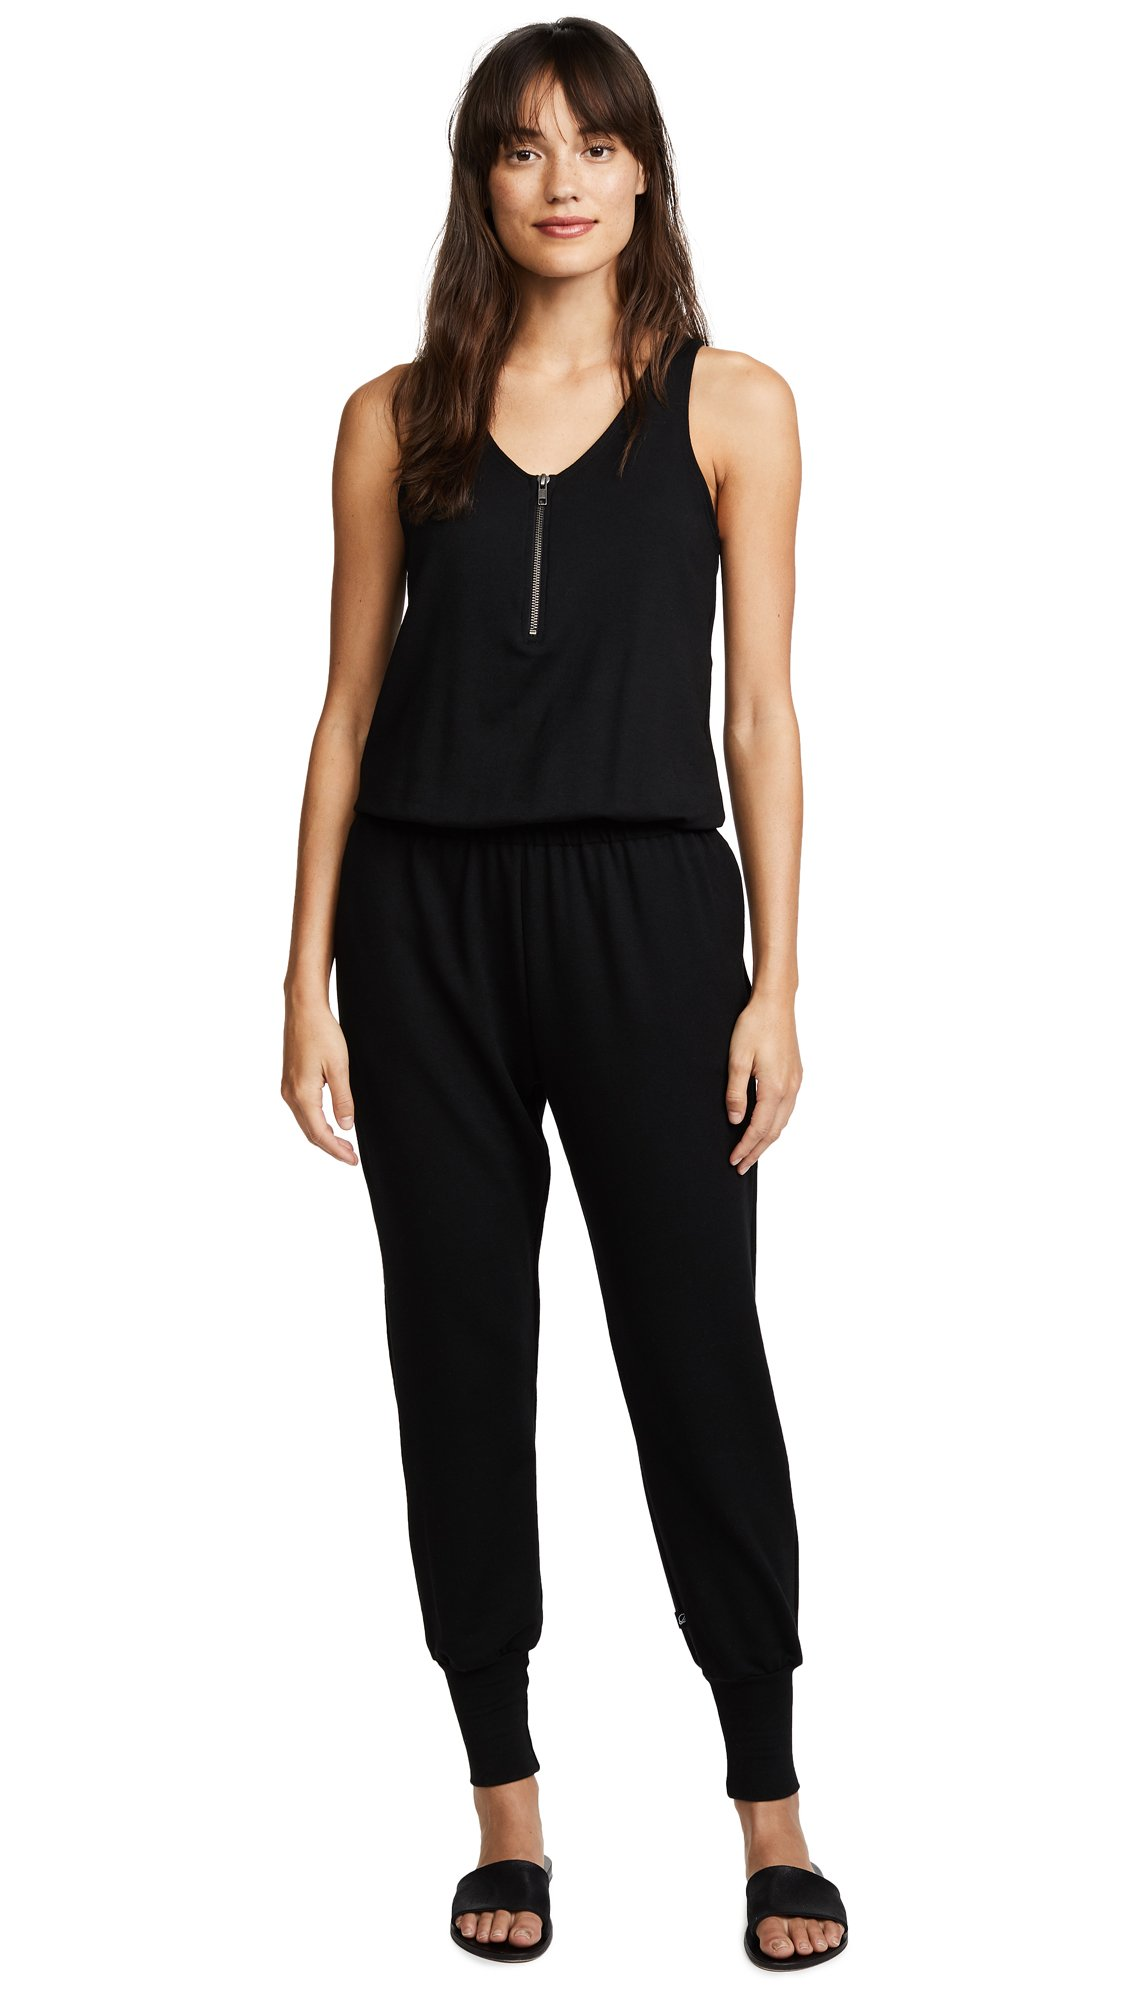 Terez Women's Black Quarter Zip Jumpsuit, Black, Medium